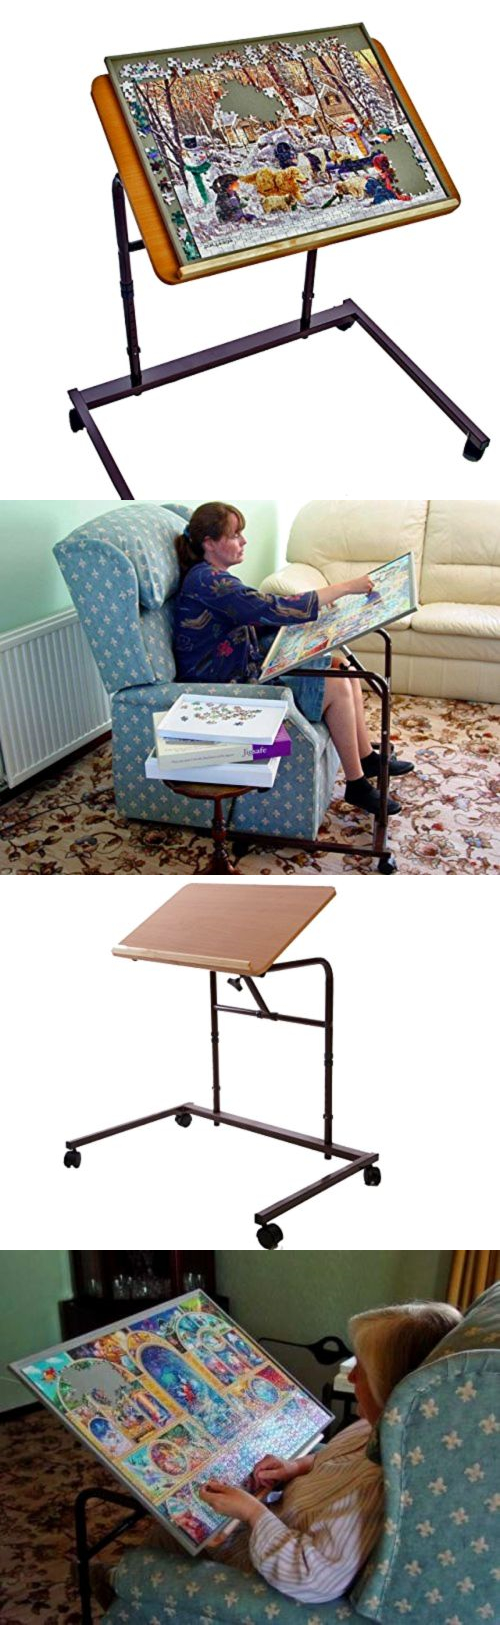 Storage Mats And Glue 180021: Jigsaw Puzzle Table Jig Table Easel Stand  Adult Jigsaw Puzzles